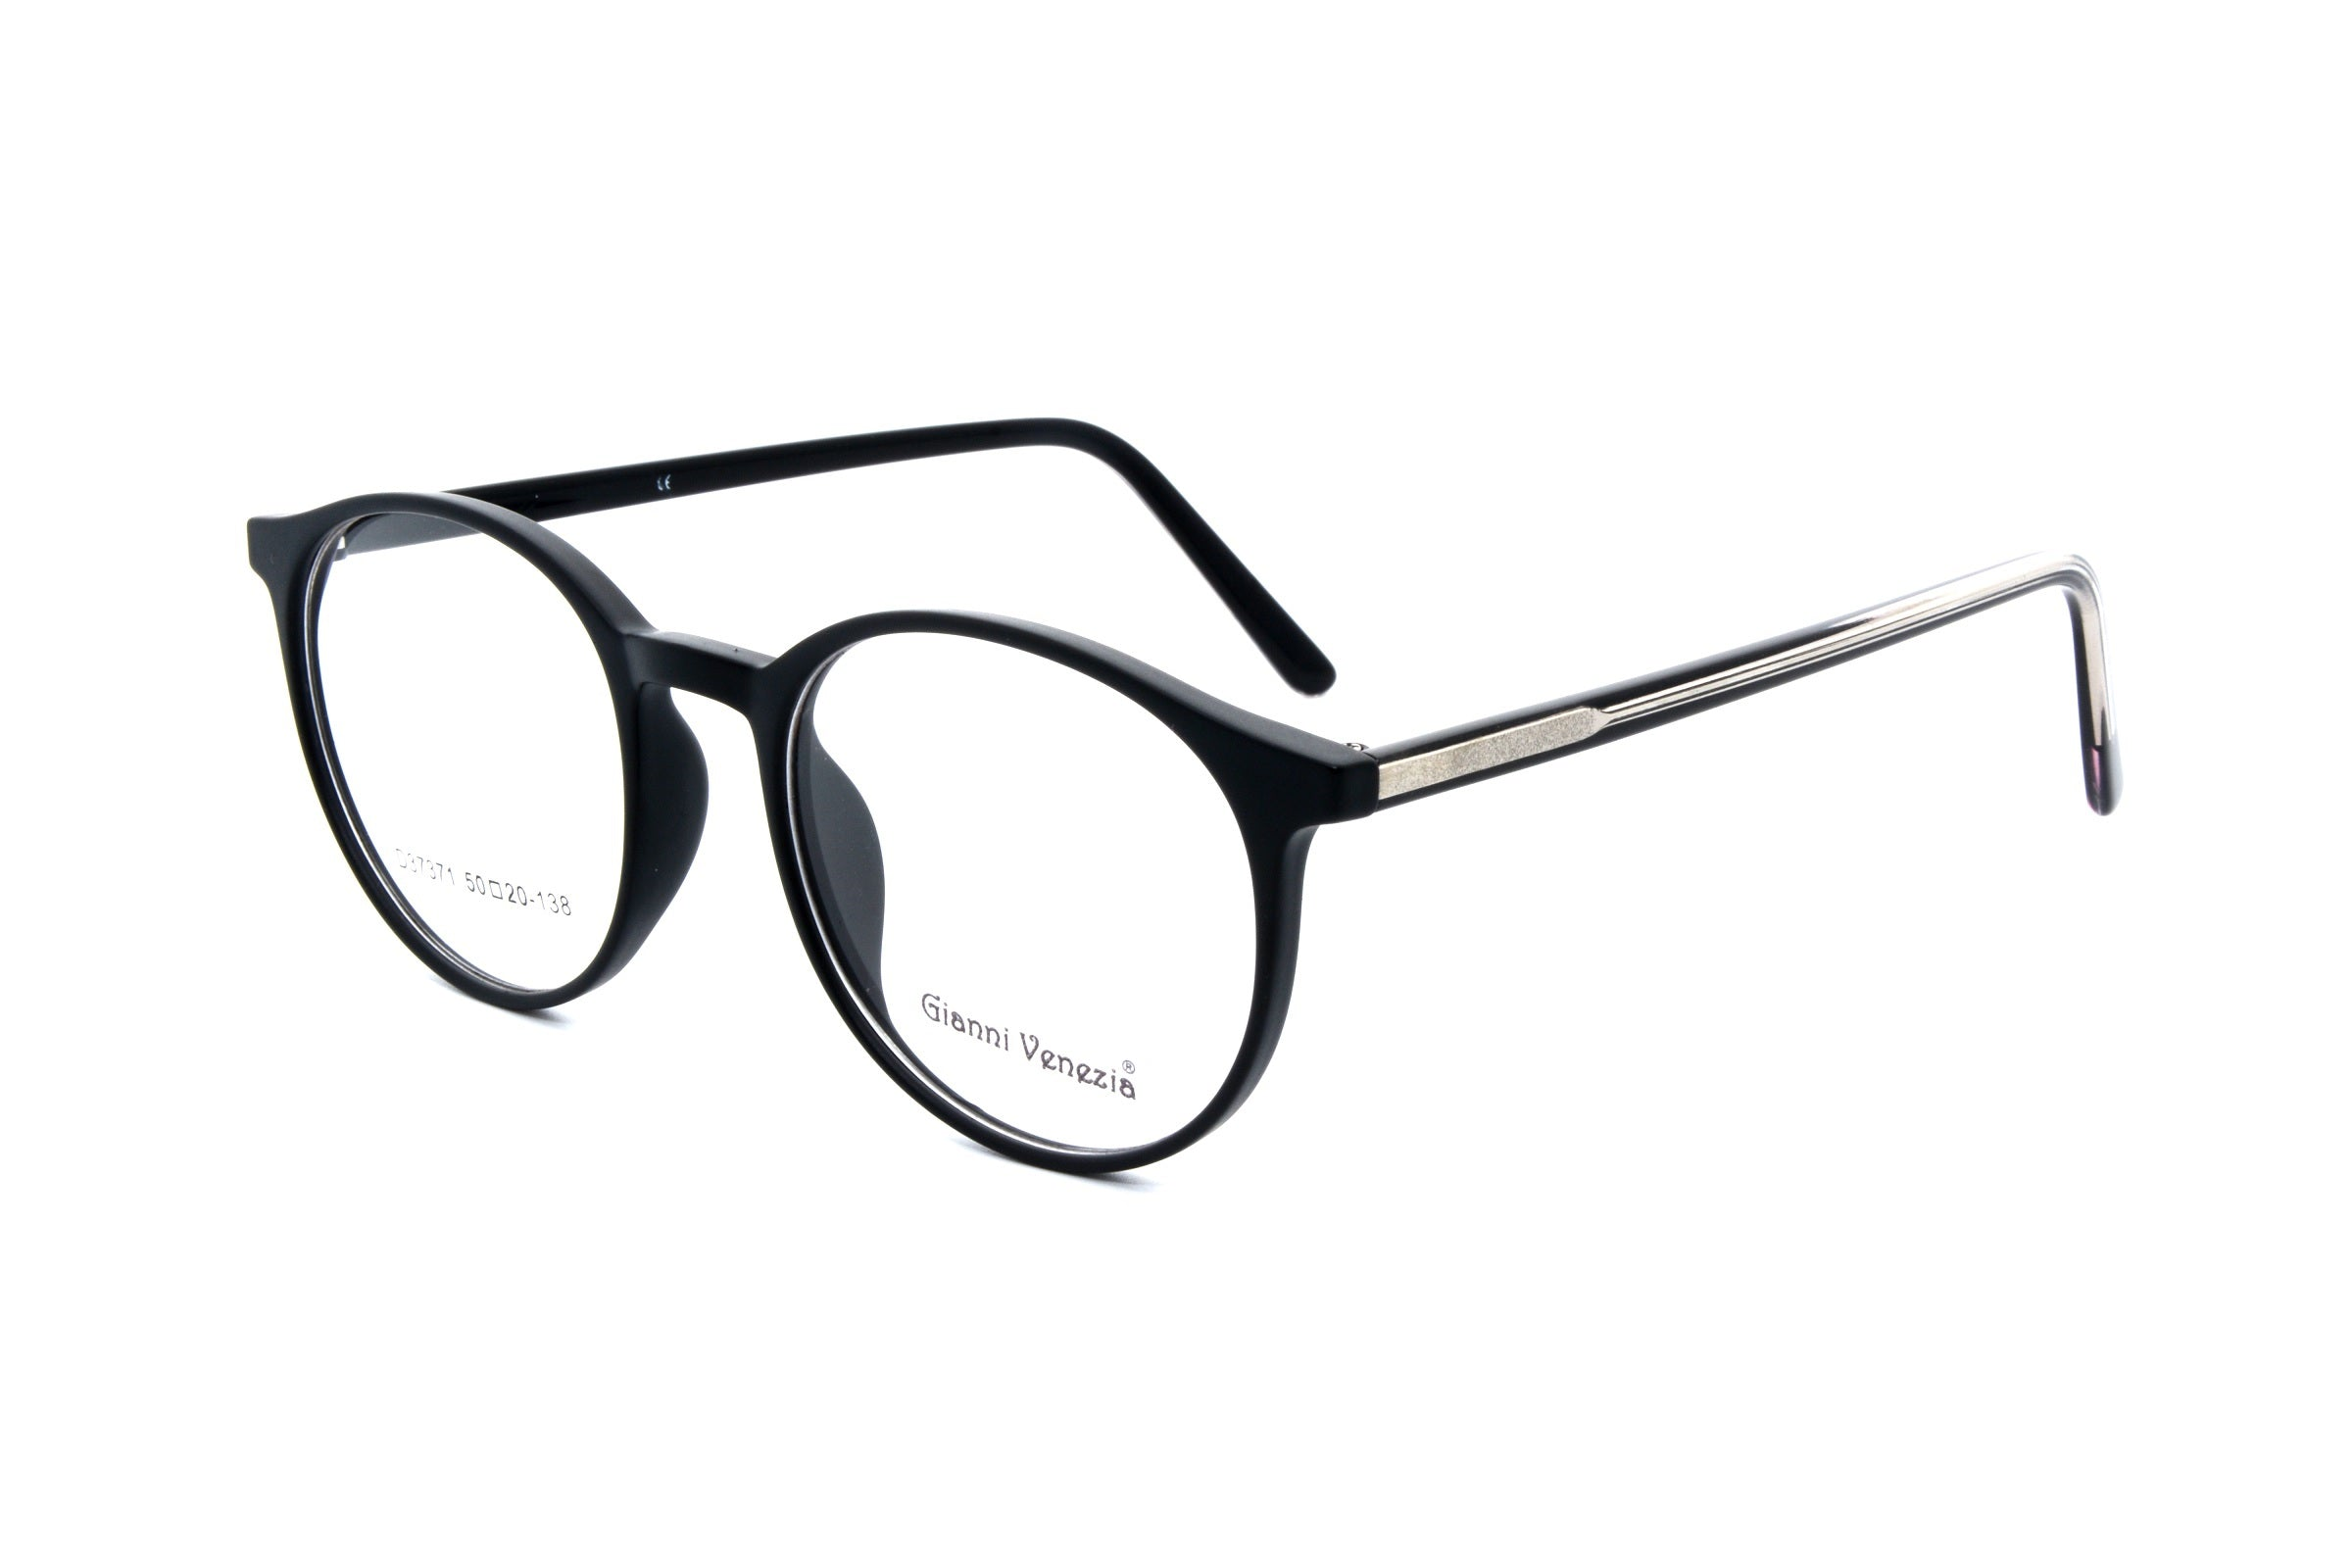 Gianni Vennezia eyewear 37371, C4 - Optics Trading